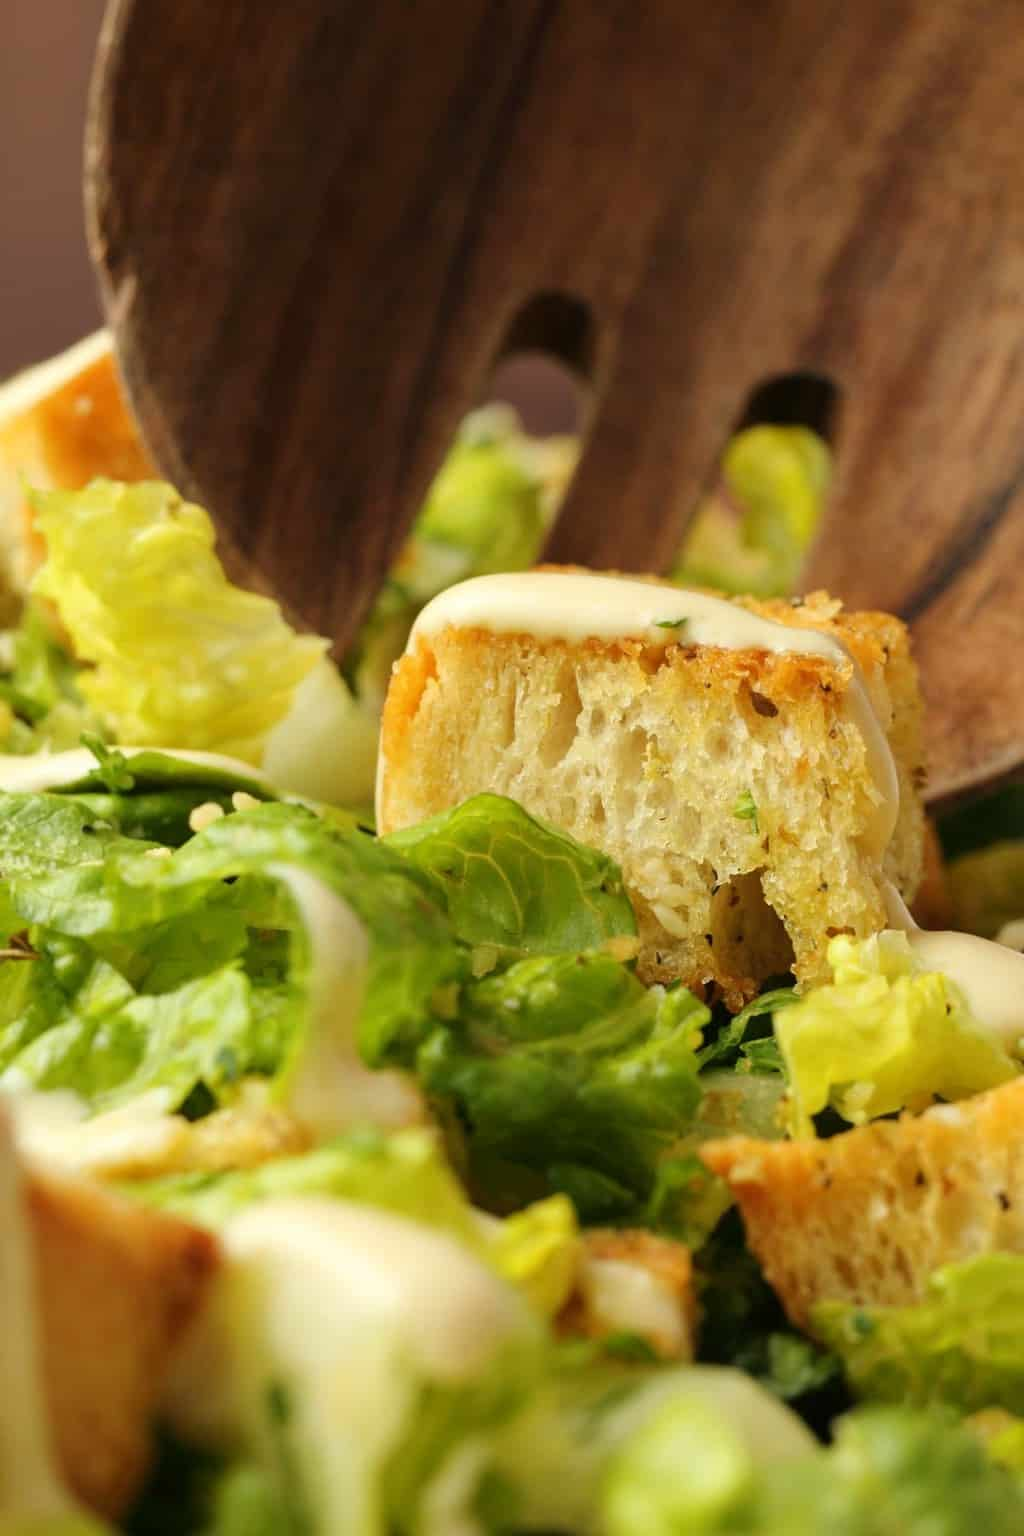 Vegan caesar salad and a wooden salad spoon.